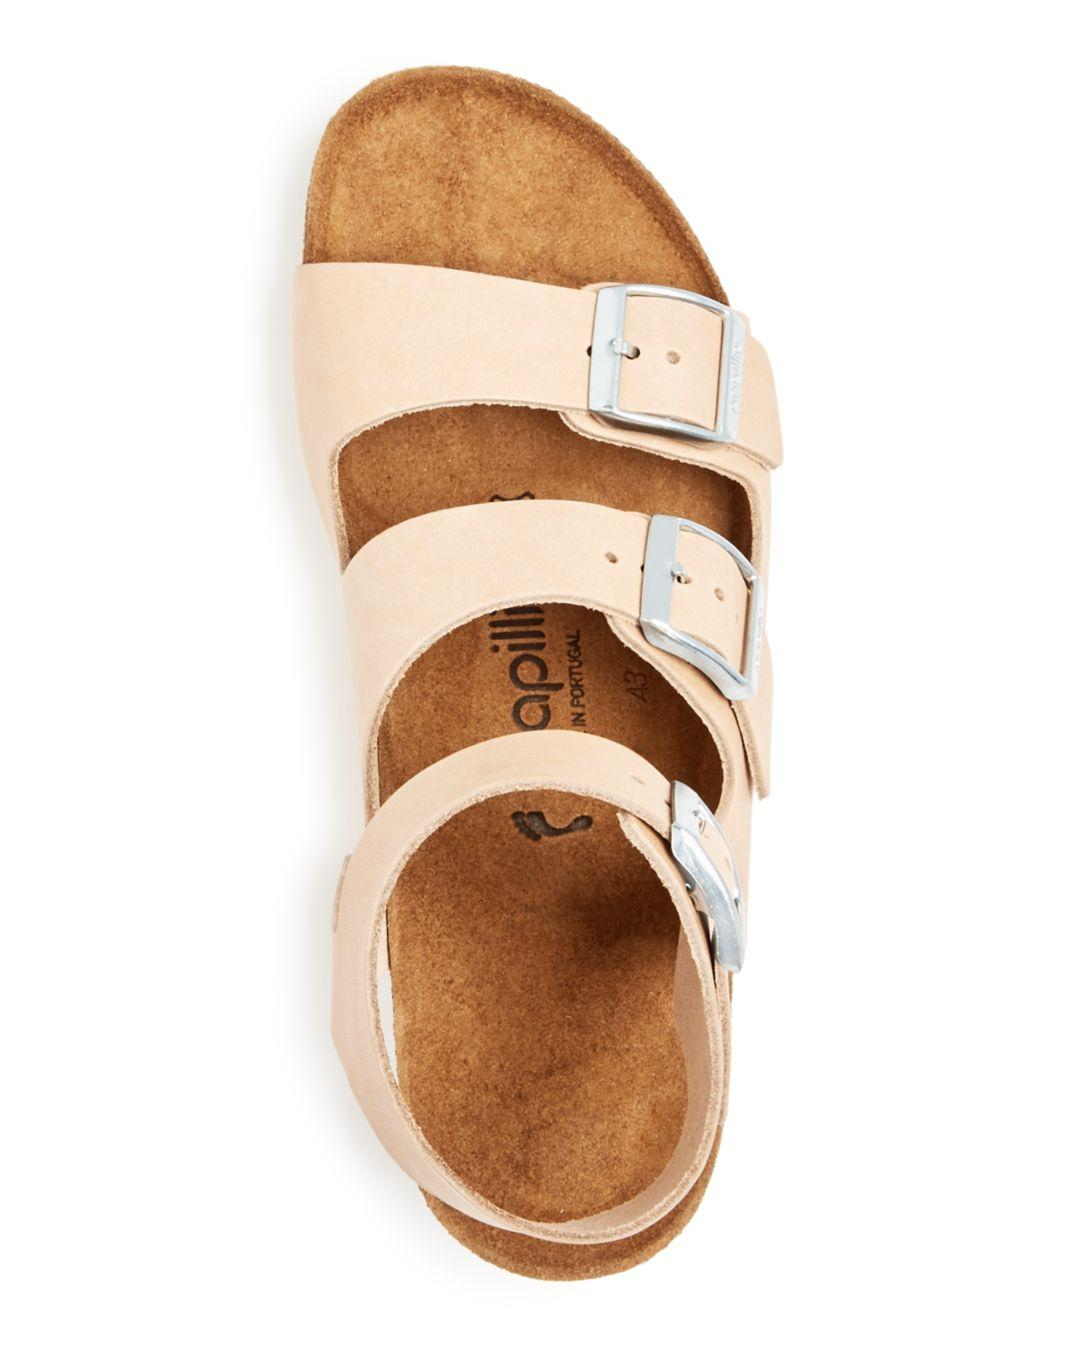 d70e330c0062 Birkenstock - Natural Women s Papillio By Linnea Platform Wedge Sandals -  Lyst. View fullscreen